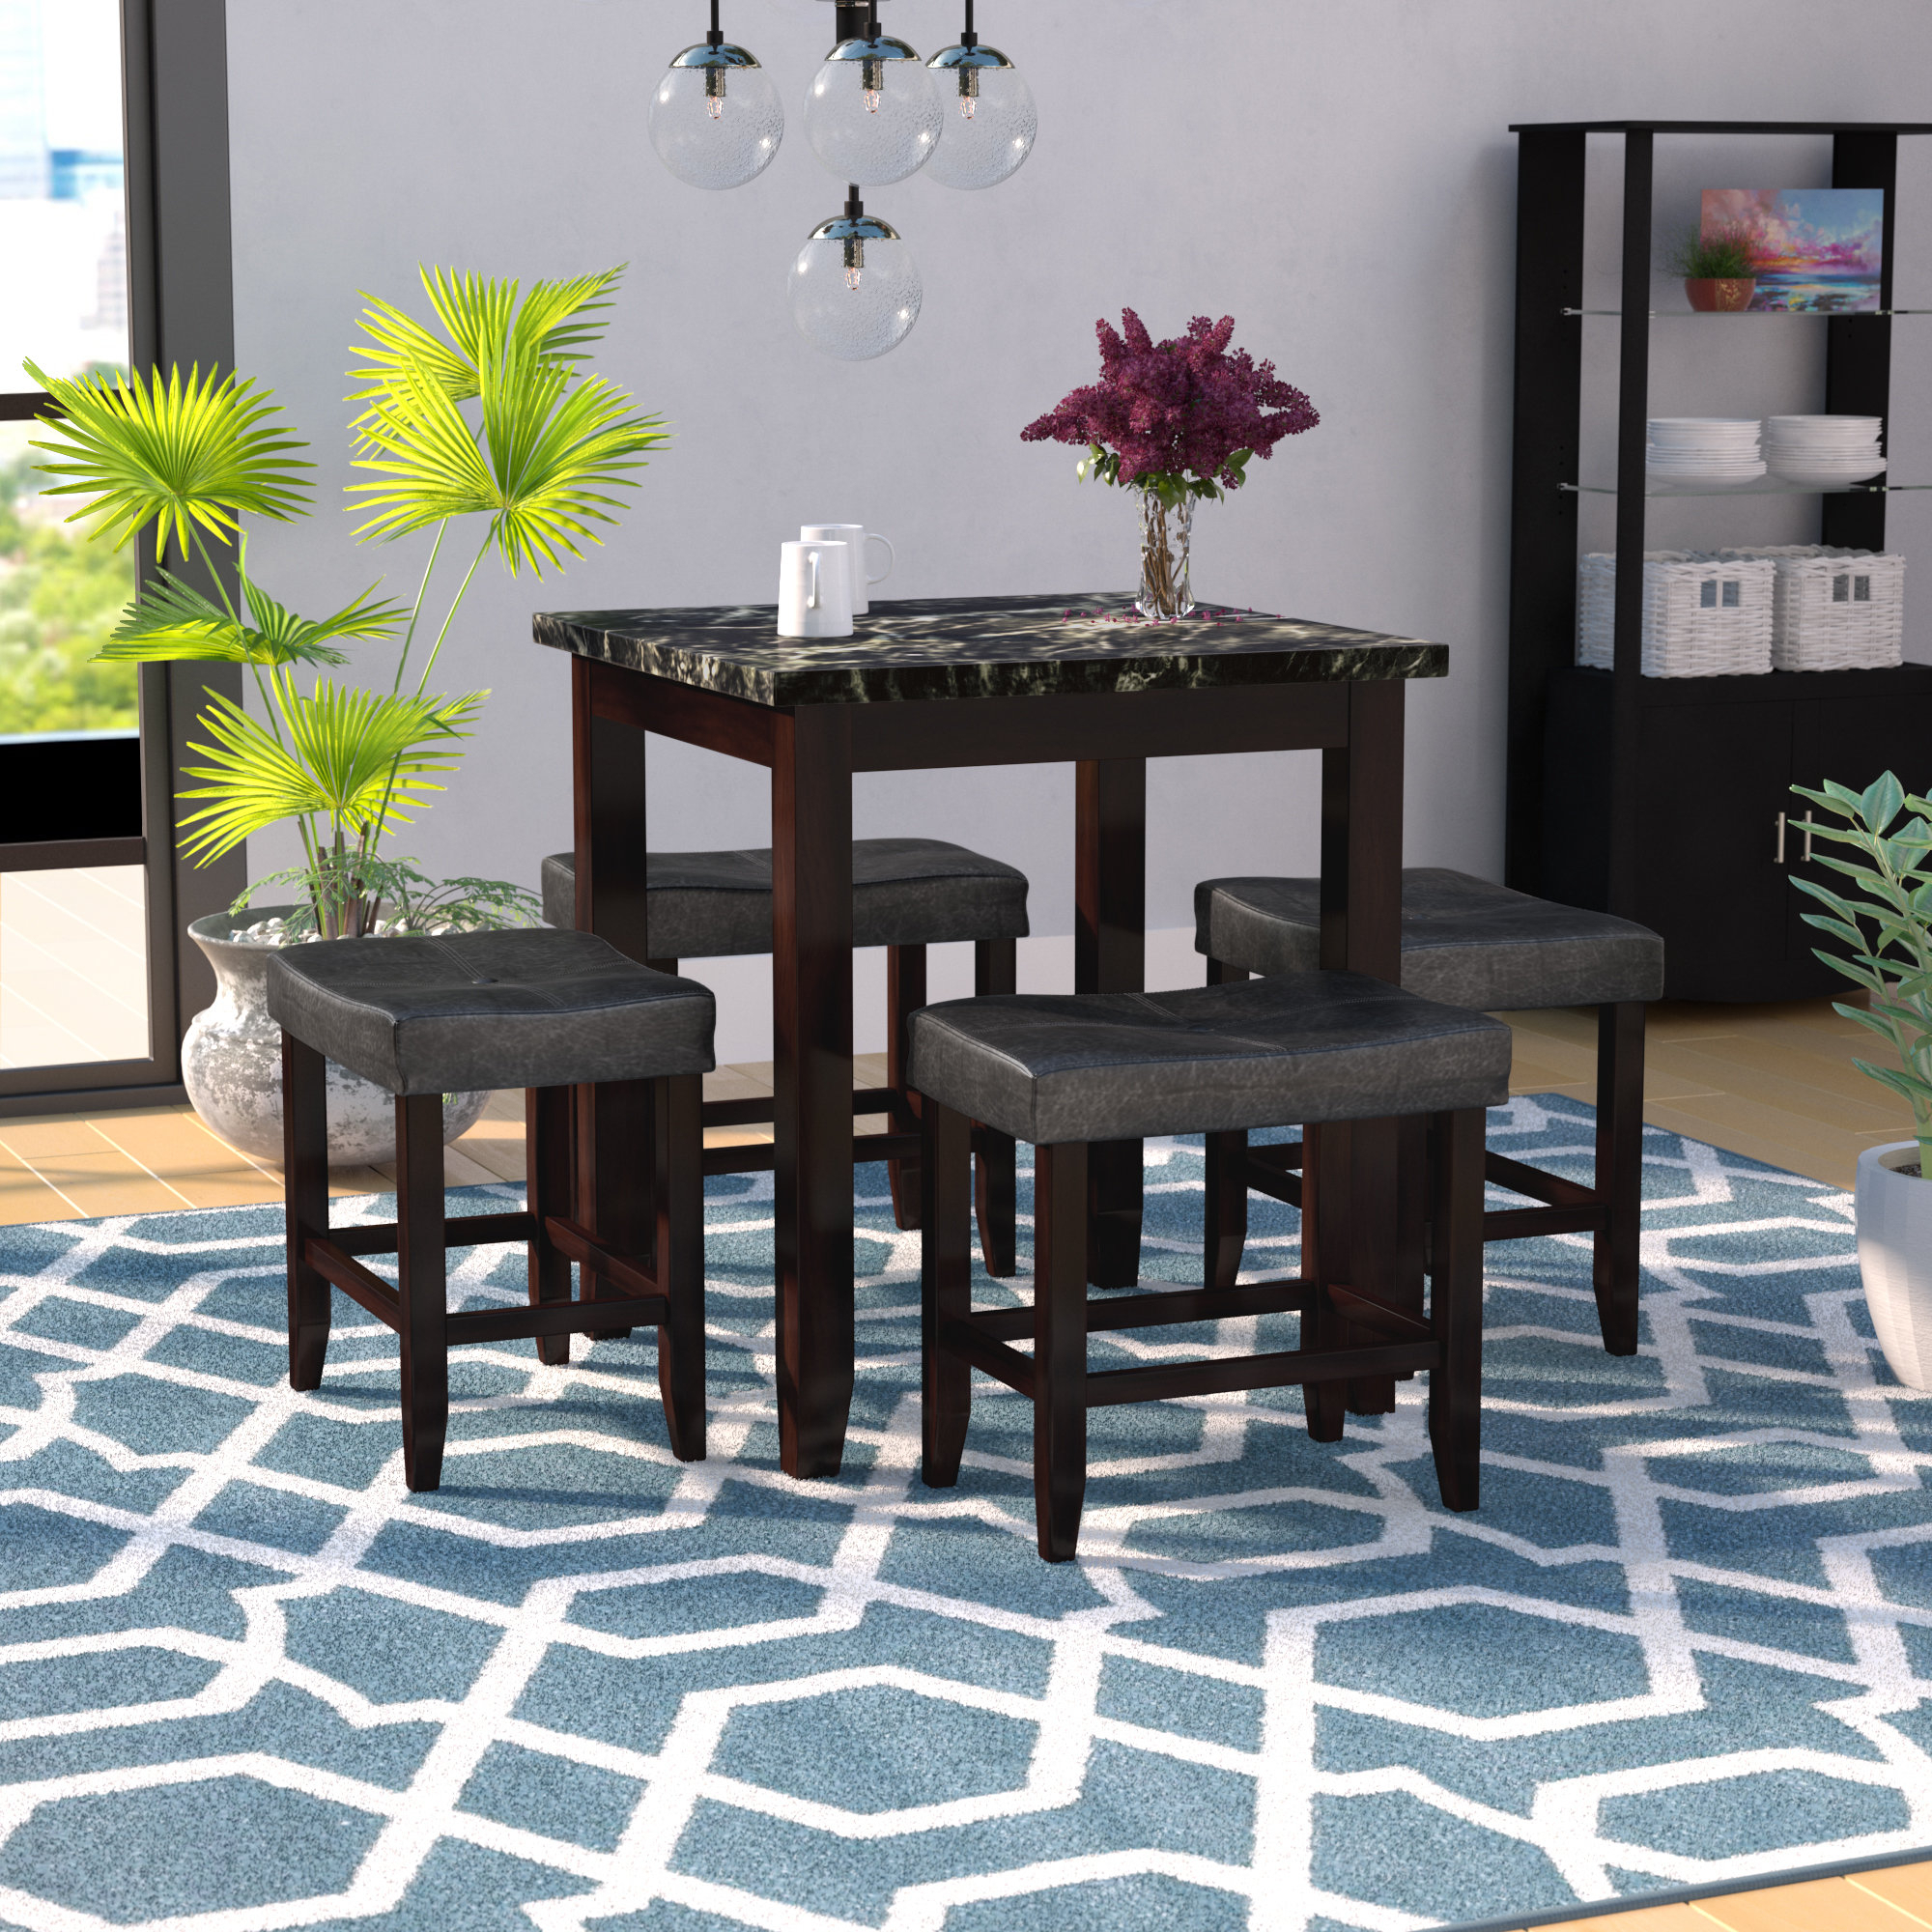 Dehaven 5 Piece Counter Height Dining Set Intended For Most Recently Released Miskell 3 Piece Dining Sets (View 18 of 20)